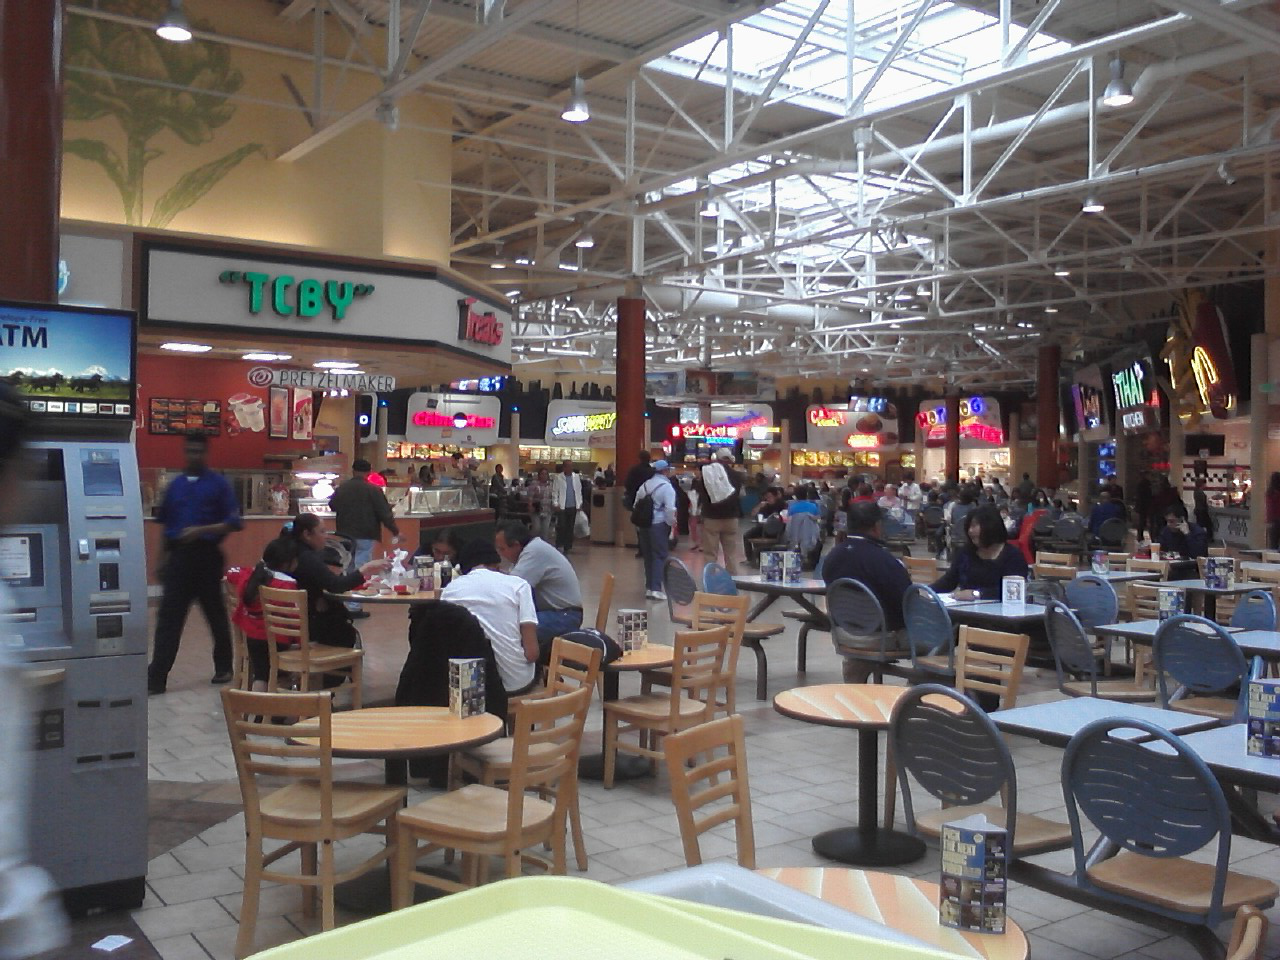 c0d569ad85e Great Mall of the Bay Area (Mall Building) - Milpitas